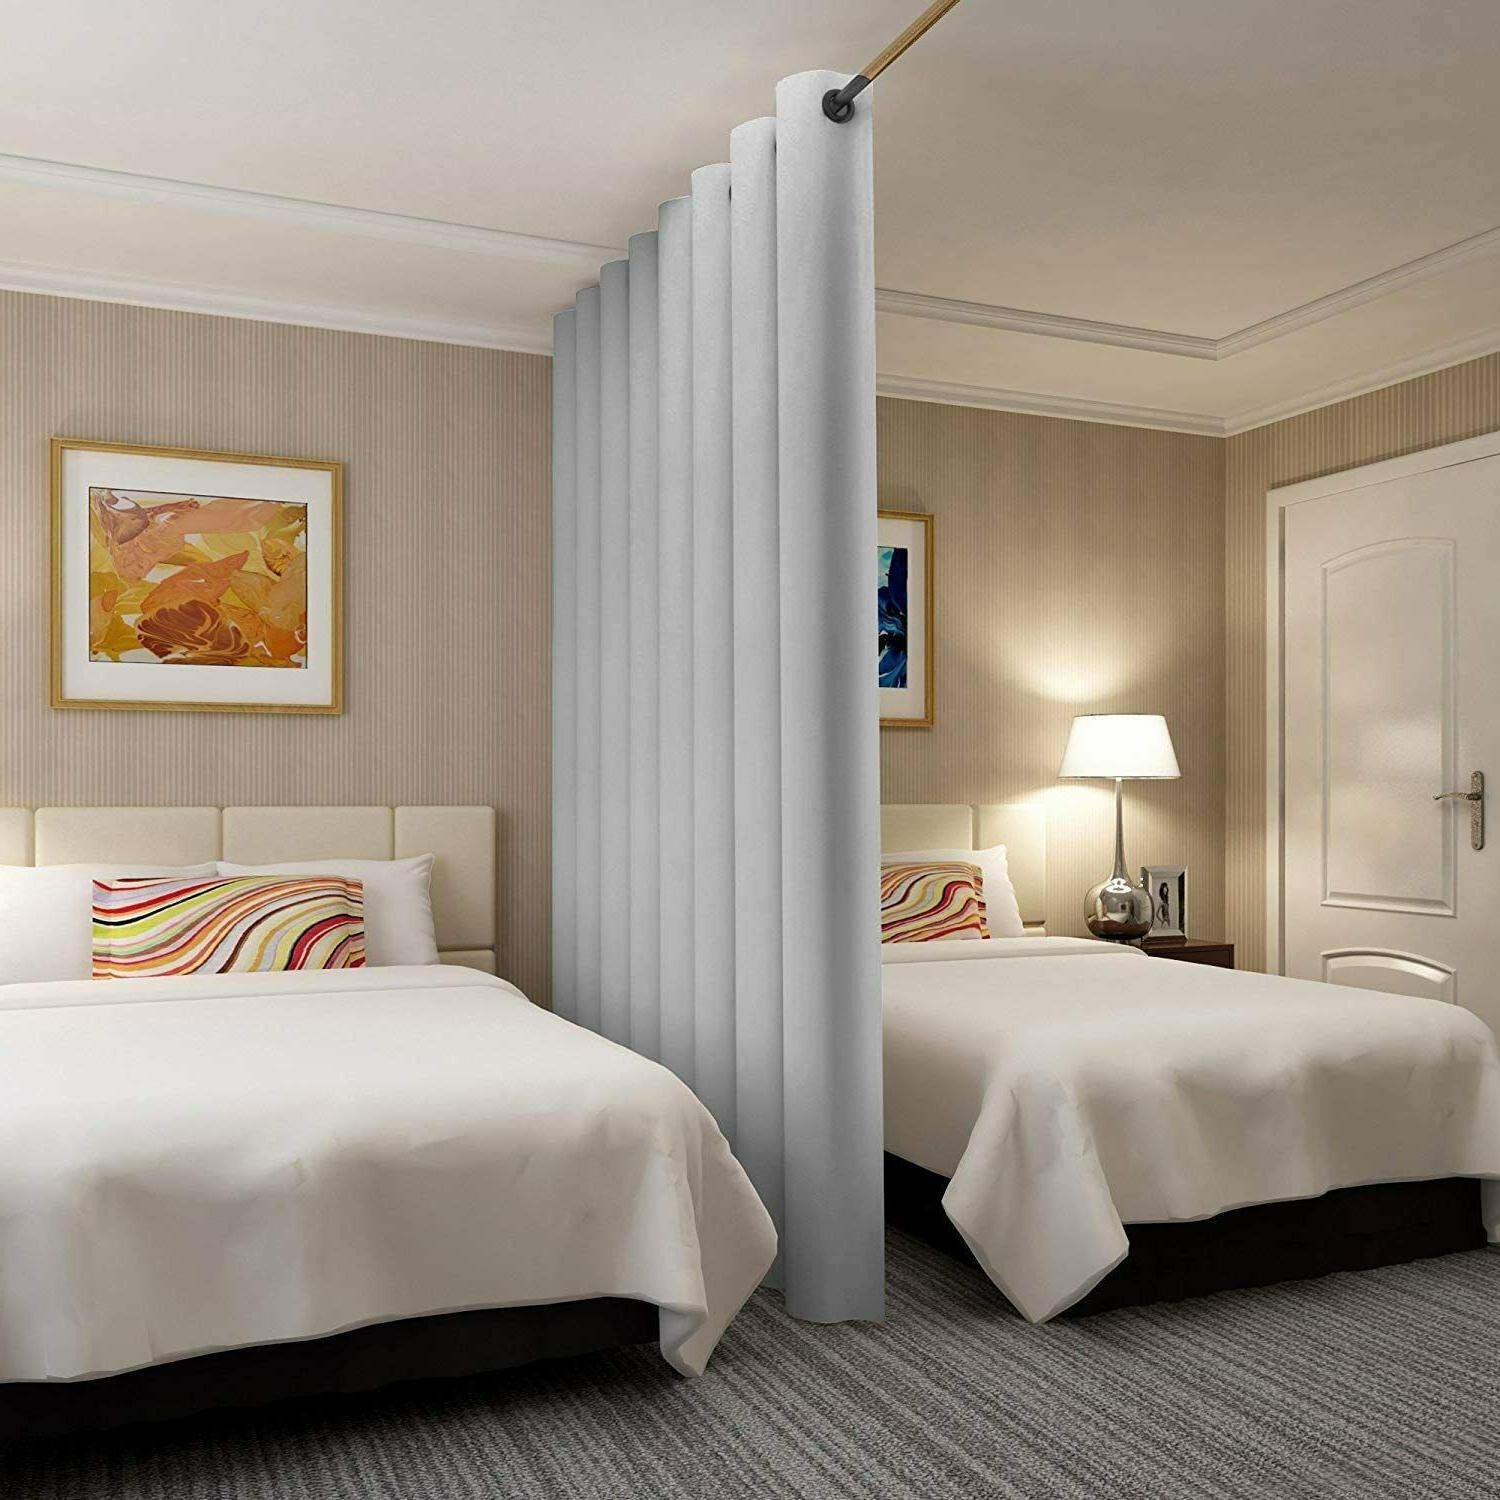 8 5 x 8 privacy room divider